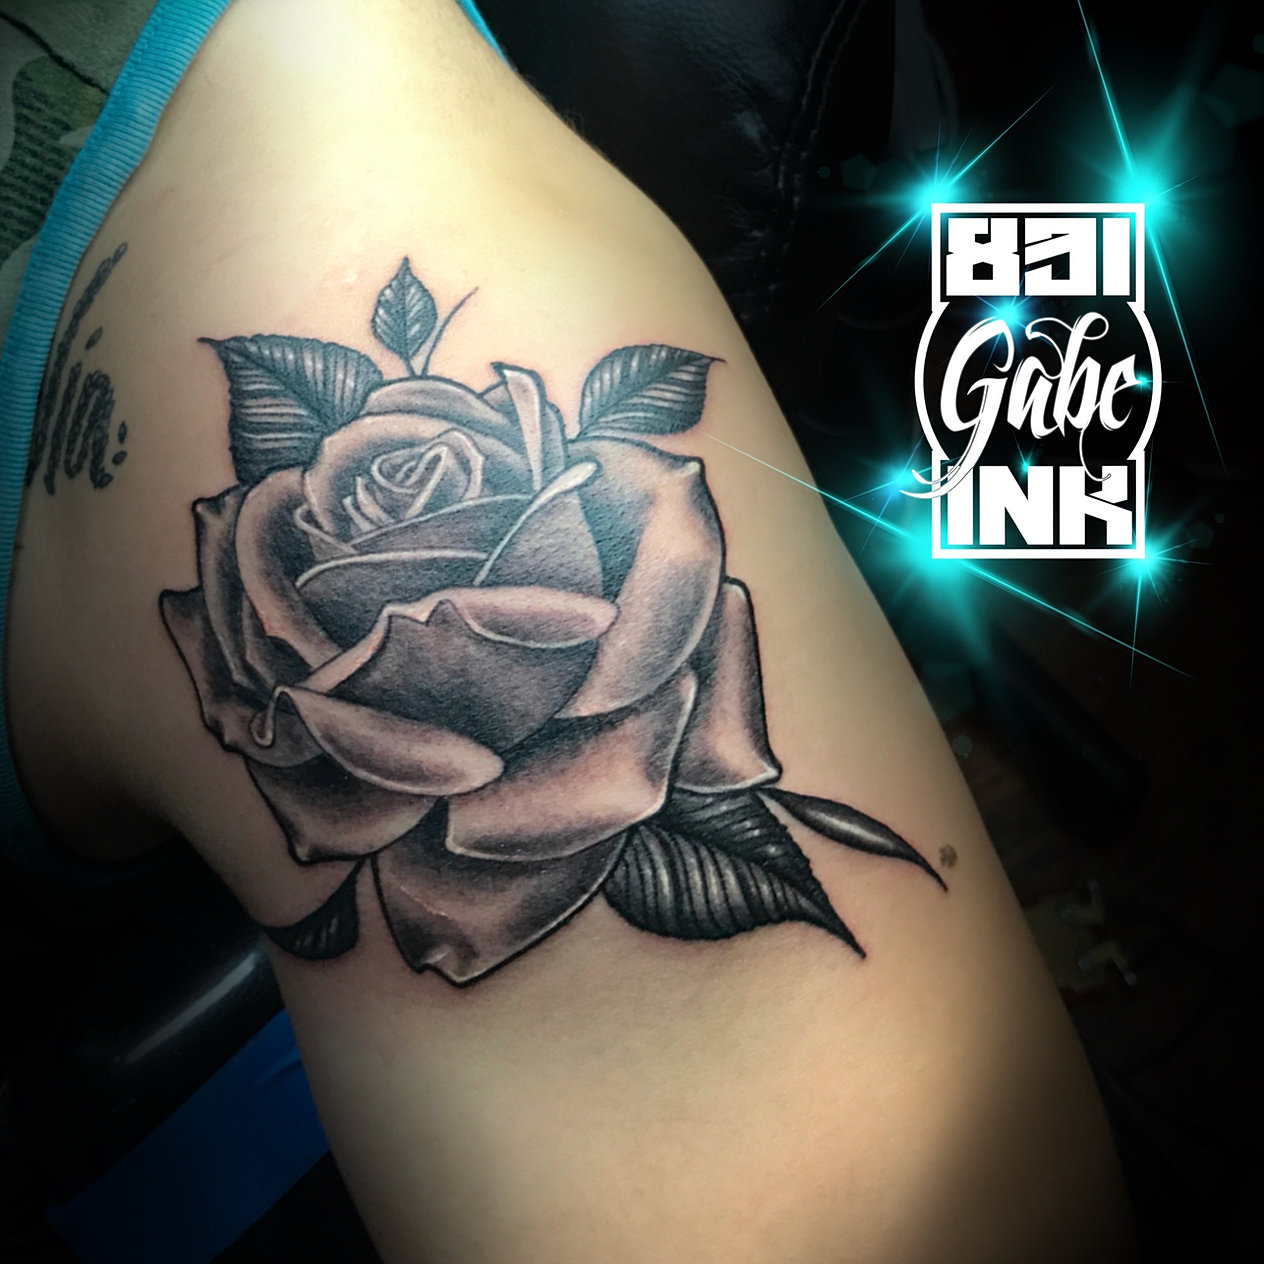 about us united states 831 ink tattoo studio of